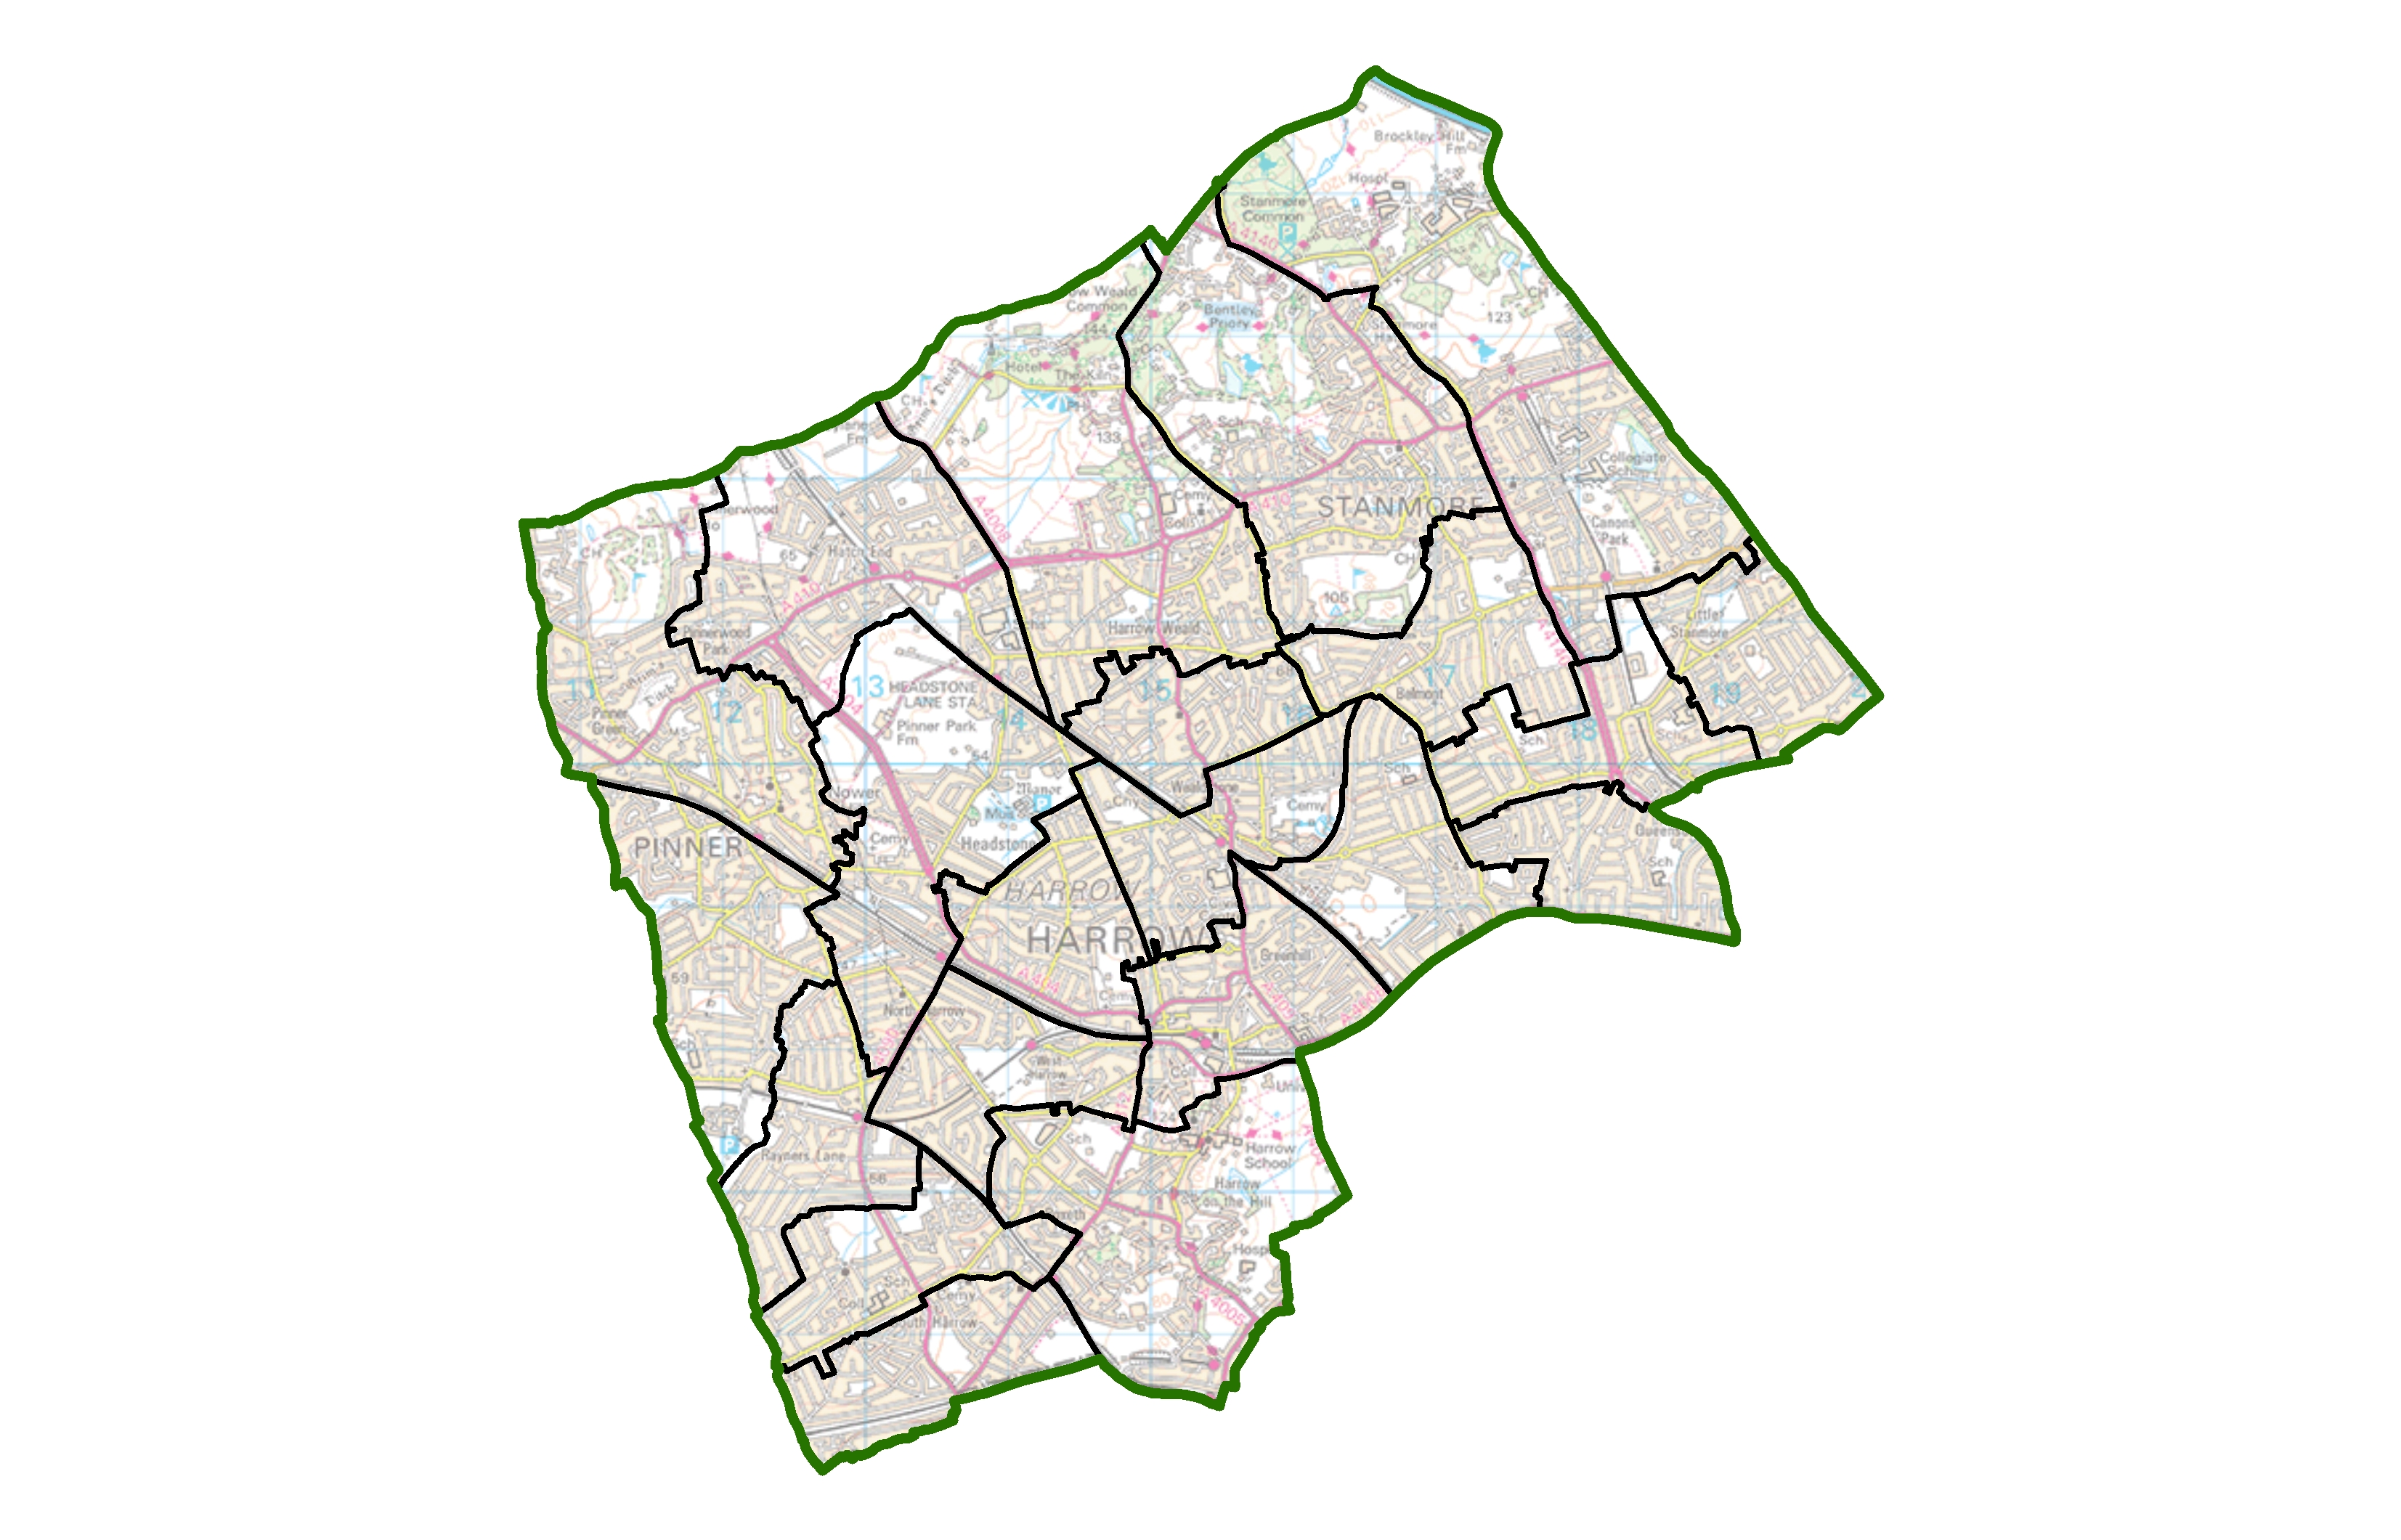 Ward map of Harrow